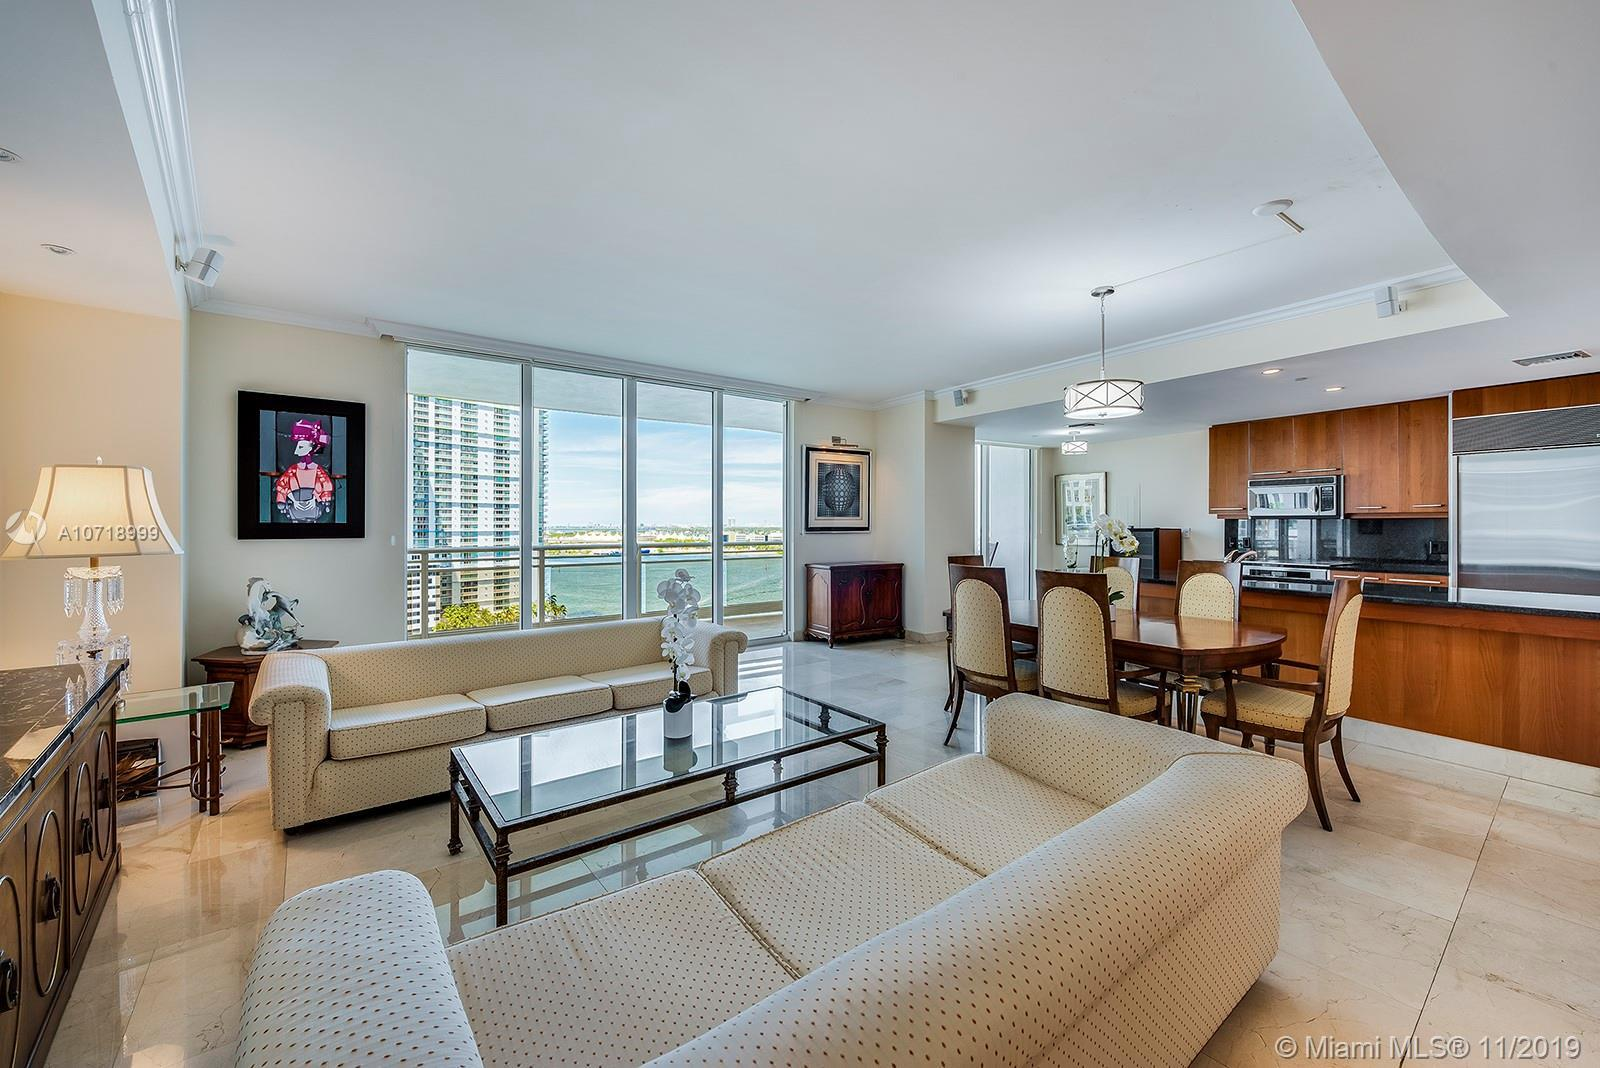 Spacious 2 bed 2.5 bath with breathtaking views overlooking the beautiful open bay waters.  Marble p